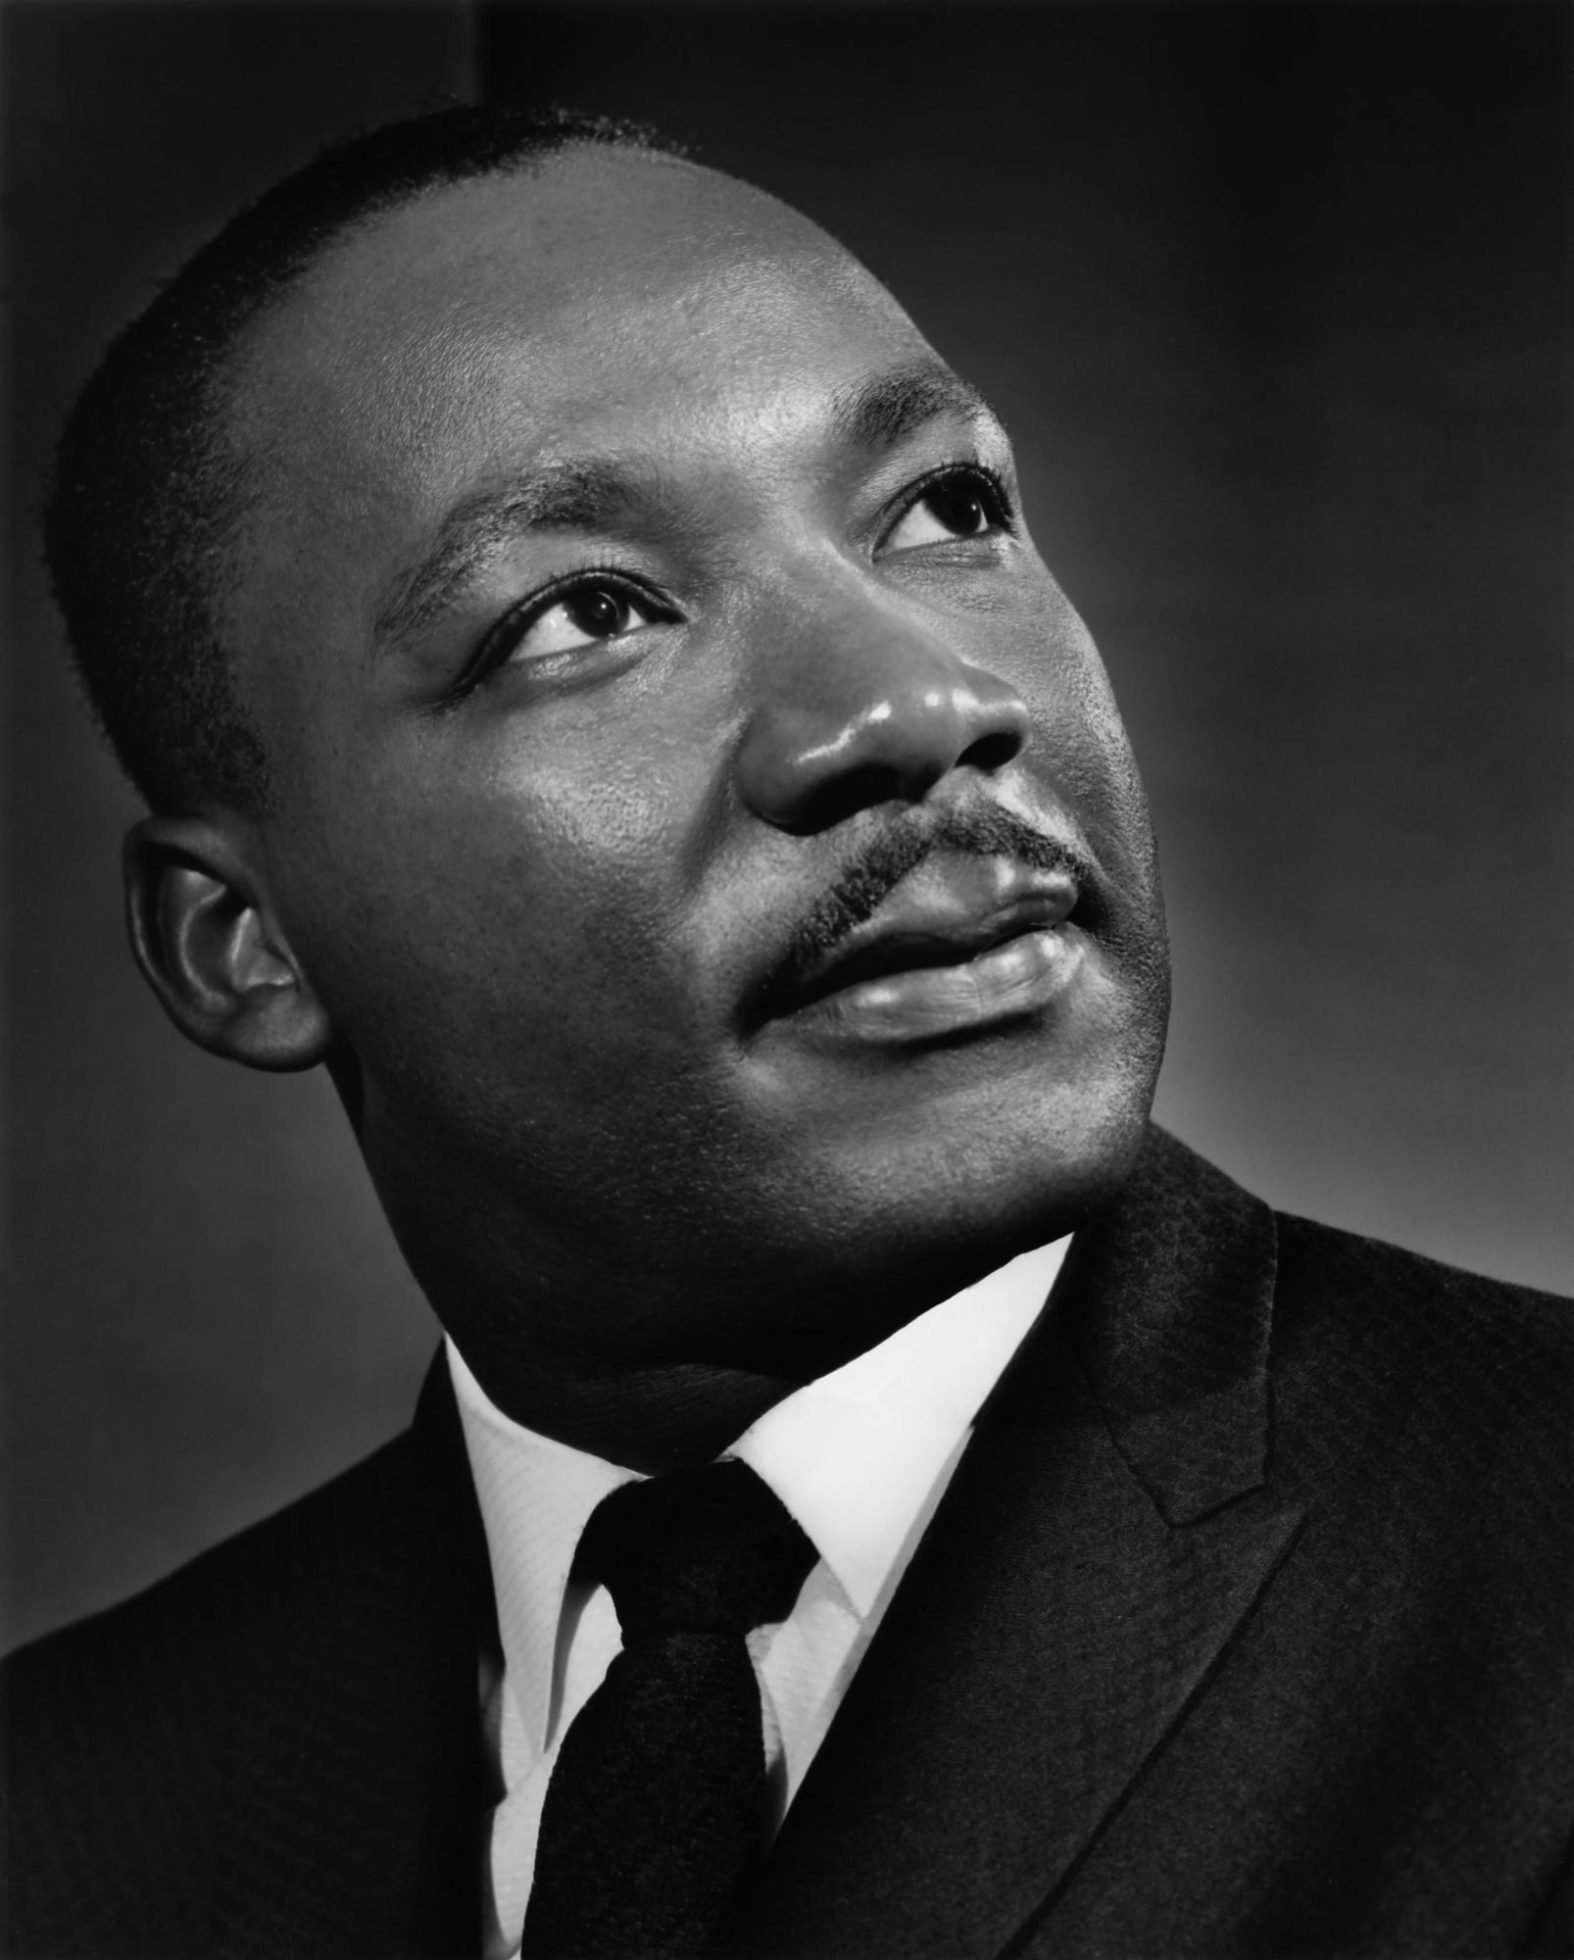 Yousuf-Karsh-Martin-Luther-King-1962